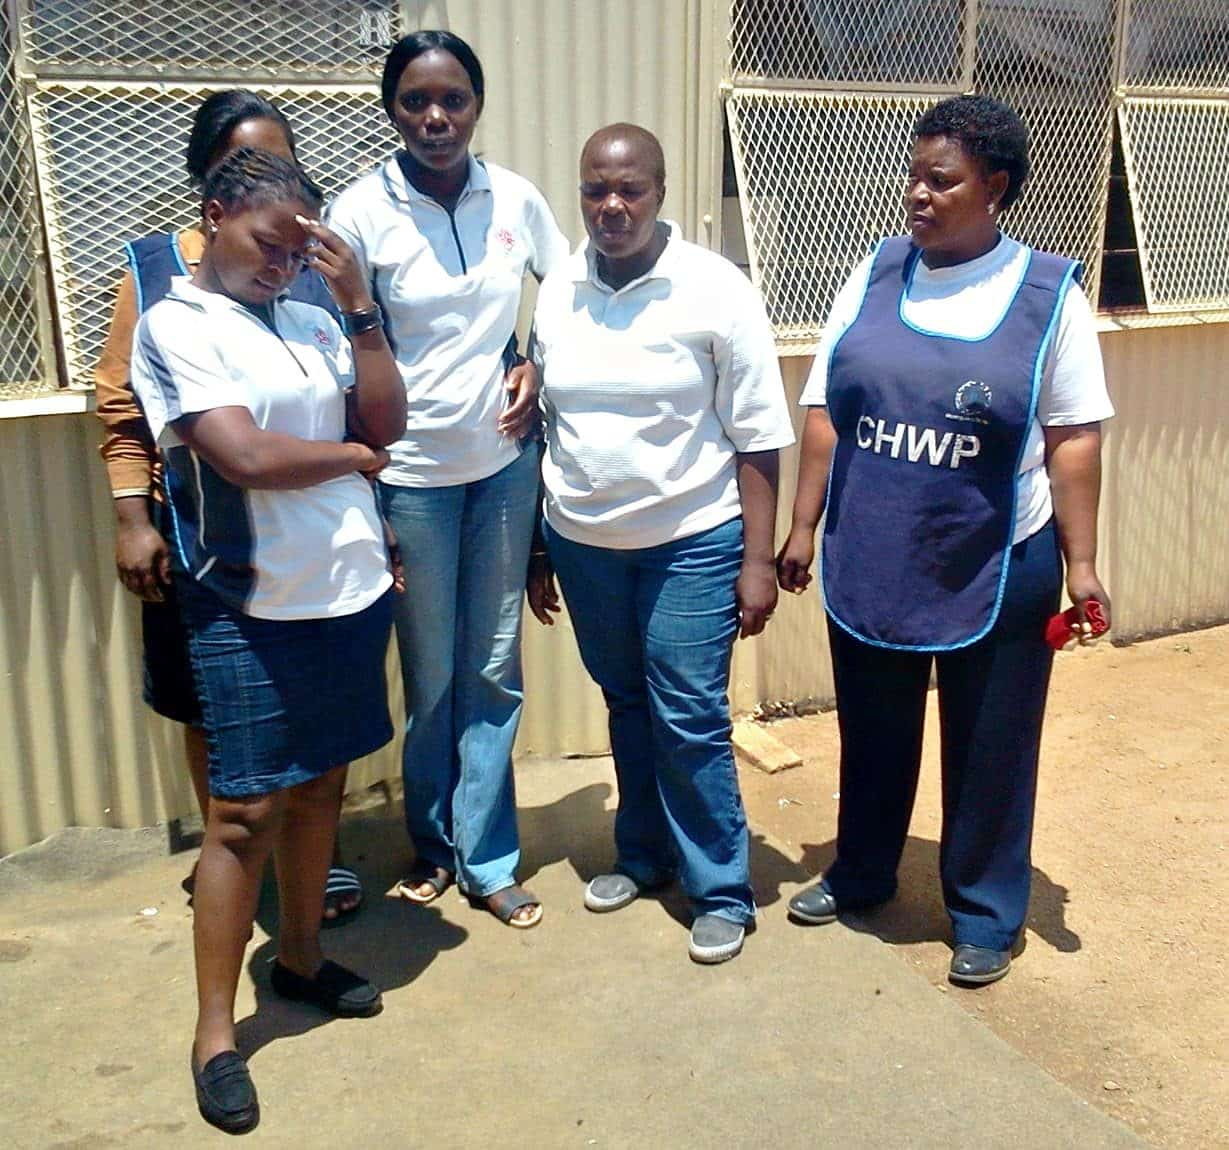 Covi19: Community health workers vulnerable